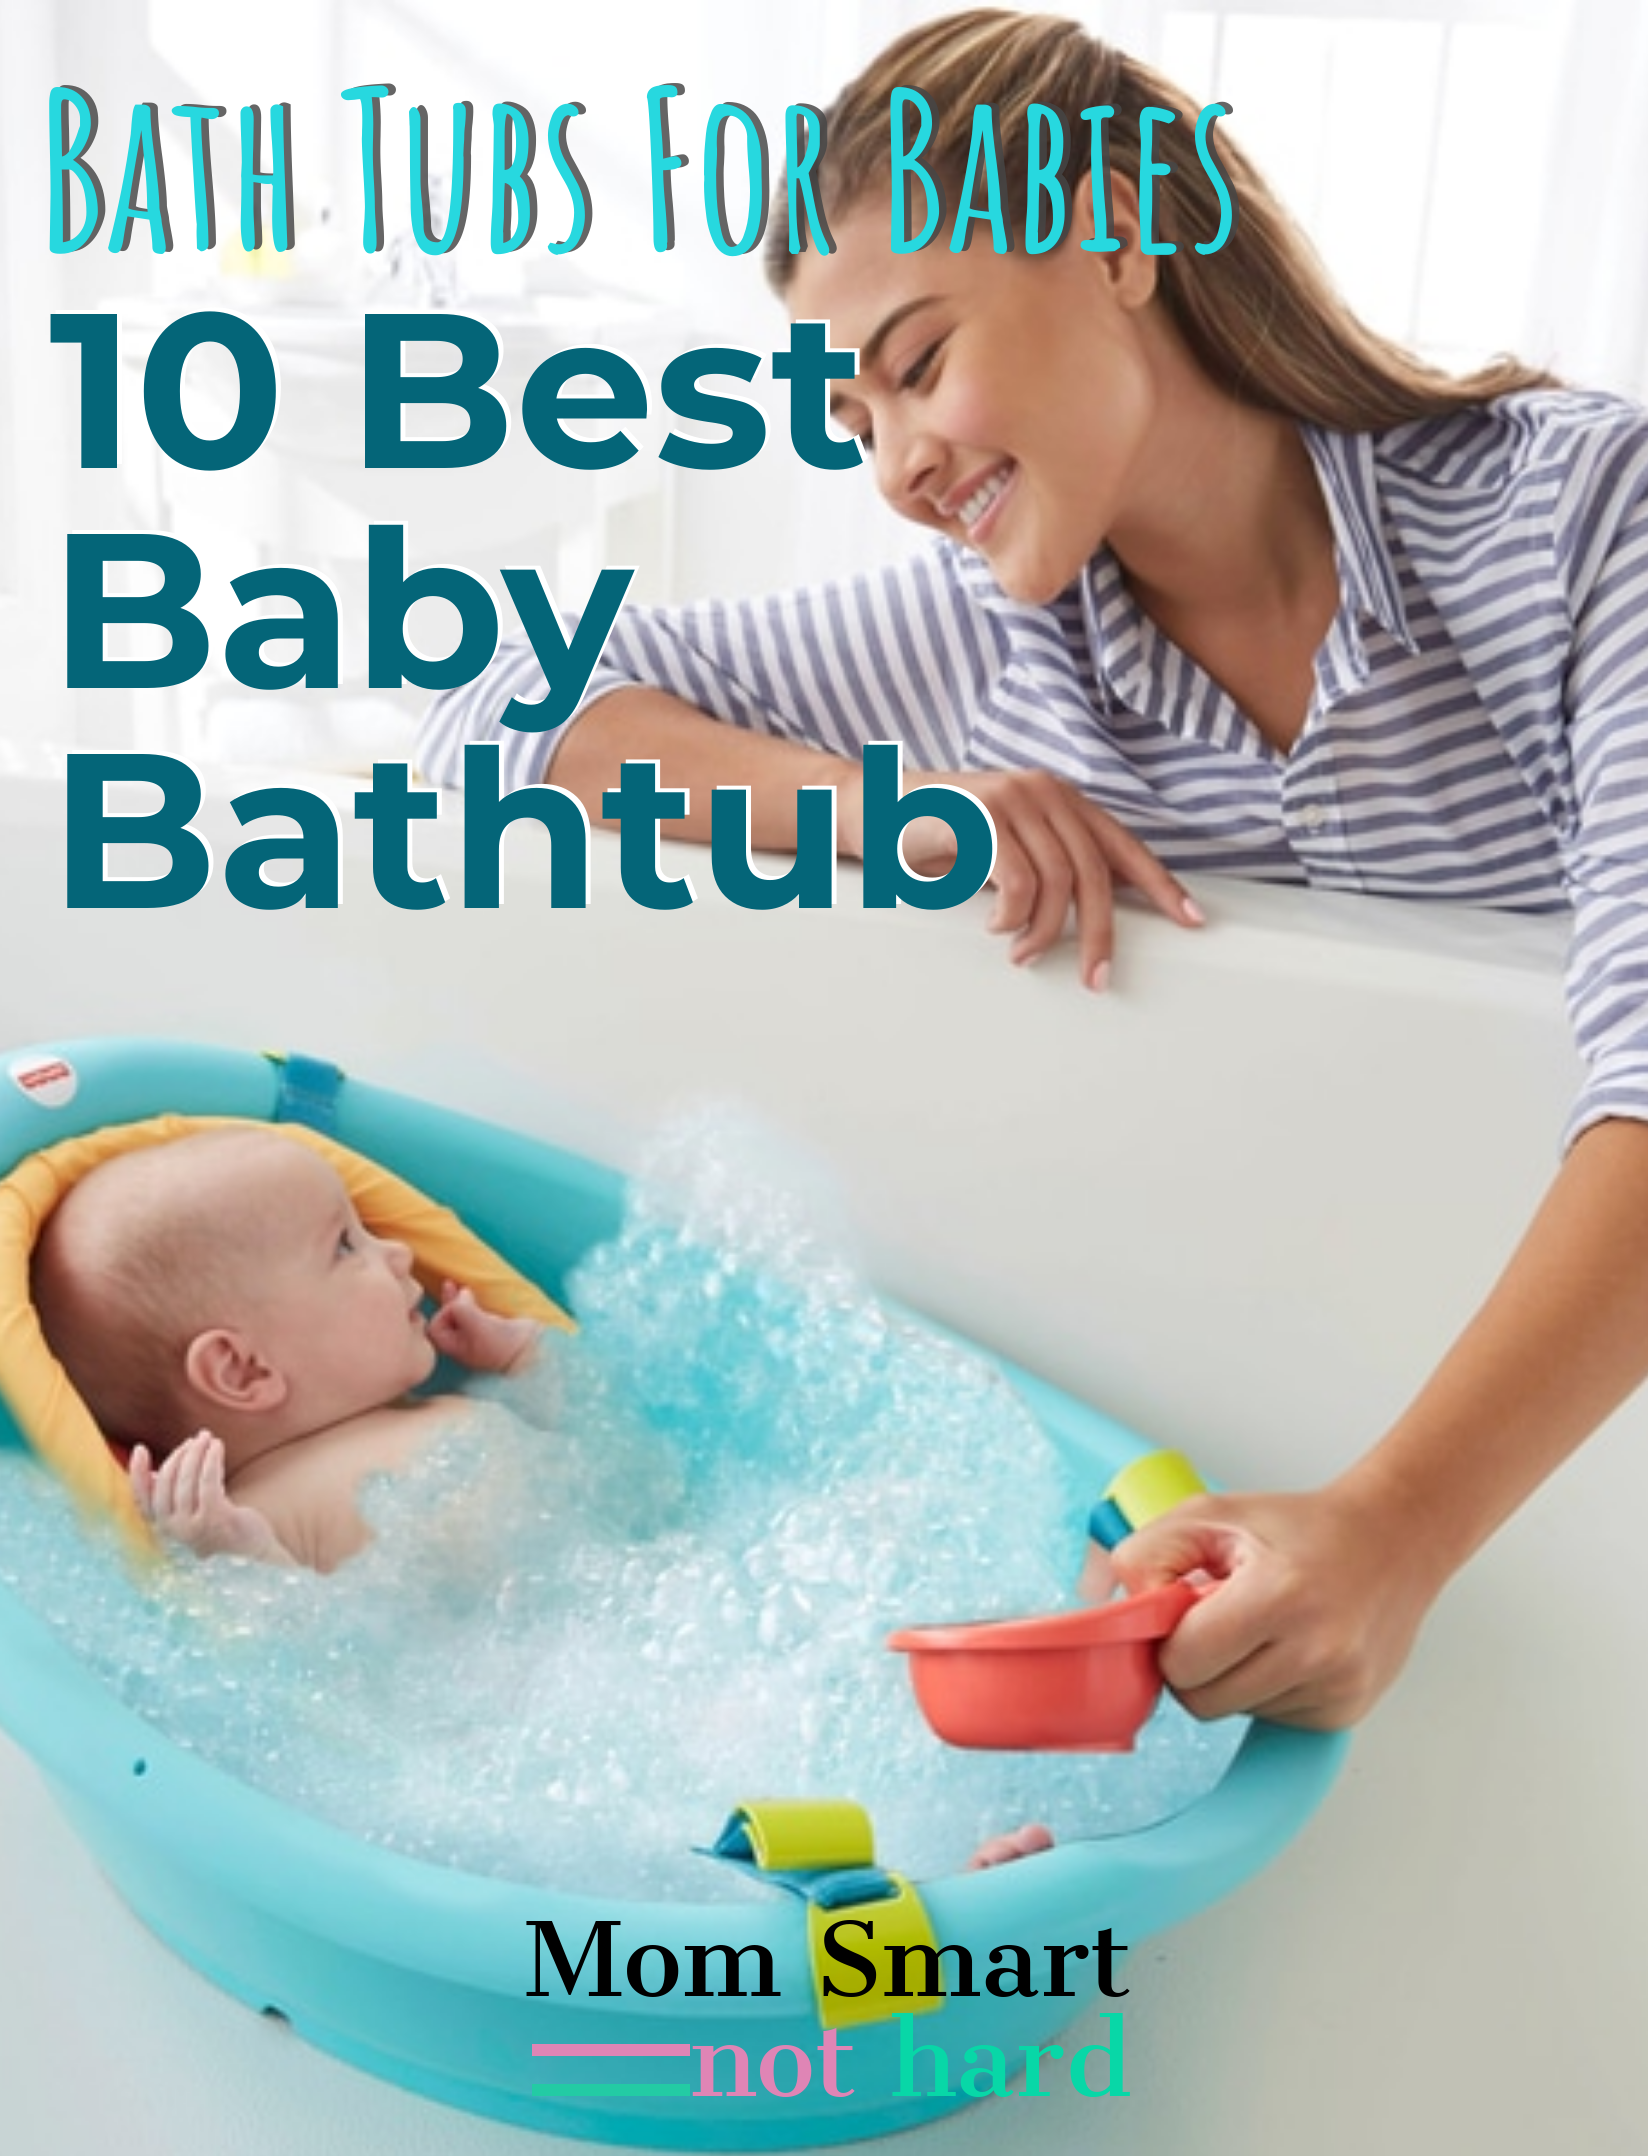 Mom Smart Not Hard And Check Out Our Review And Guide To Help You Find The Best Baby Bathtub On The Market Today Ther Baby Bath Tub Best Baby Tub Baby